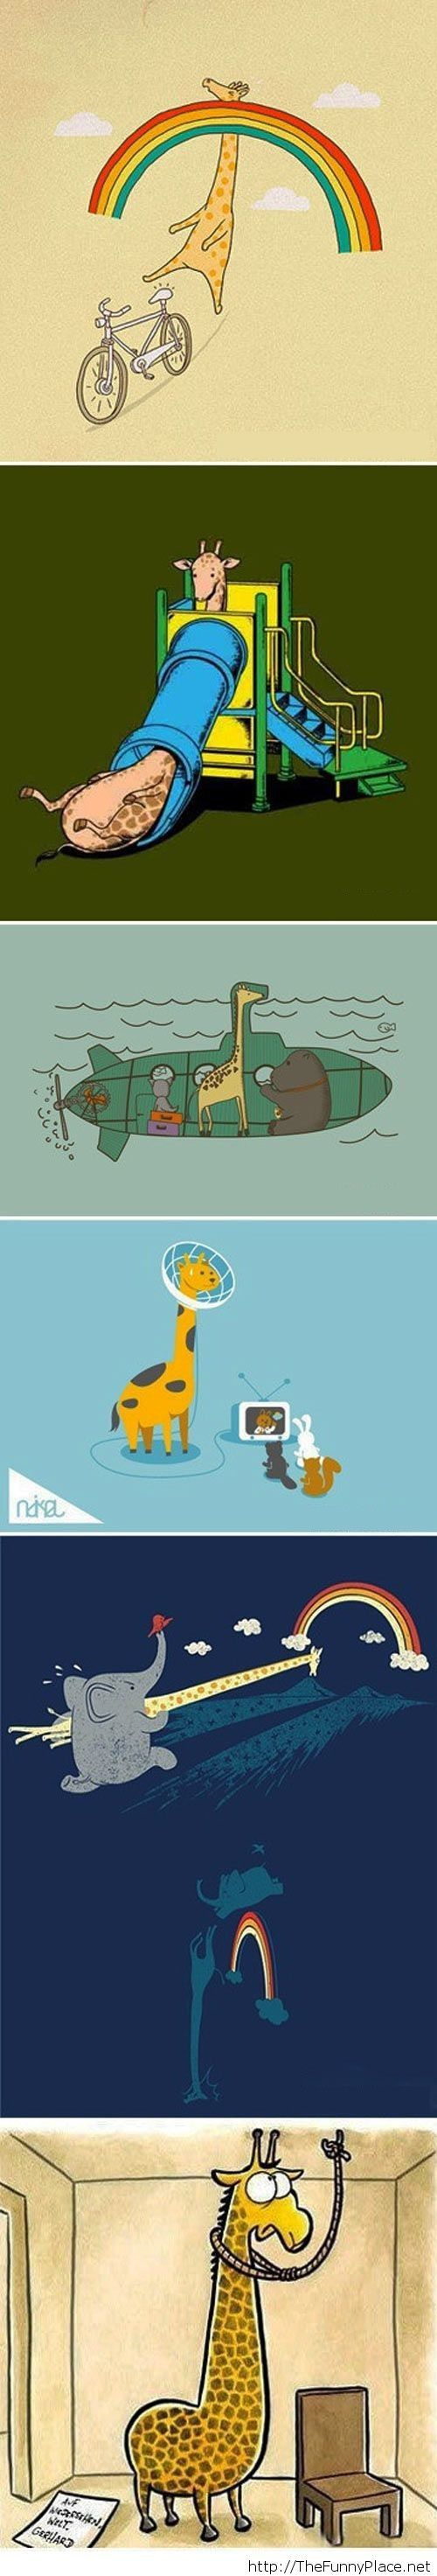 Giraffe's problems